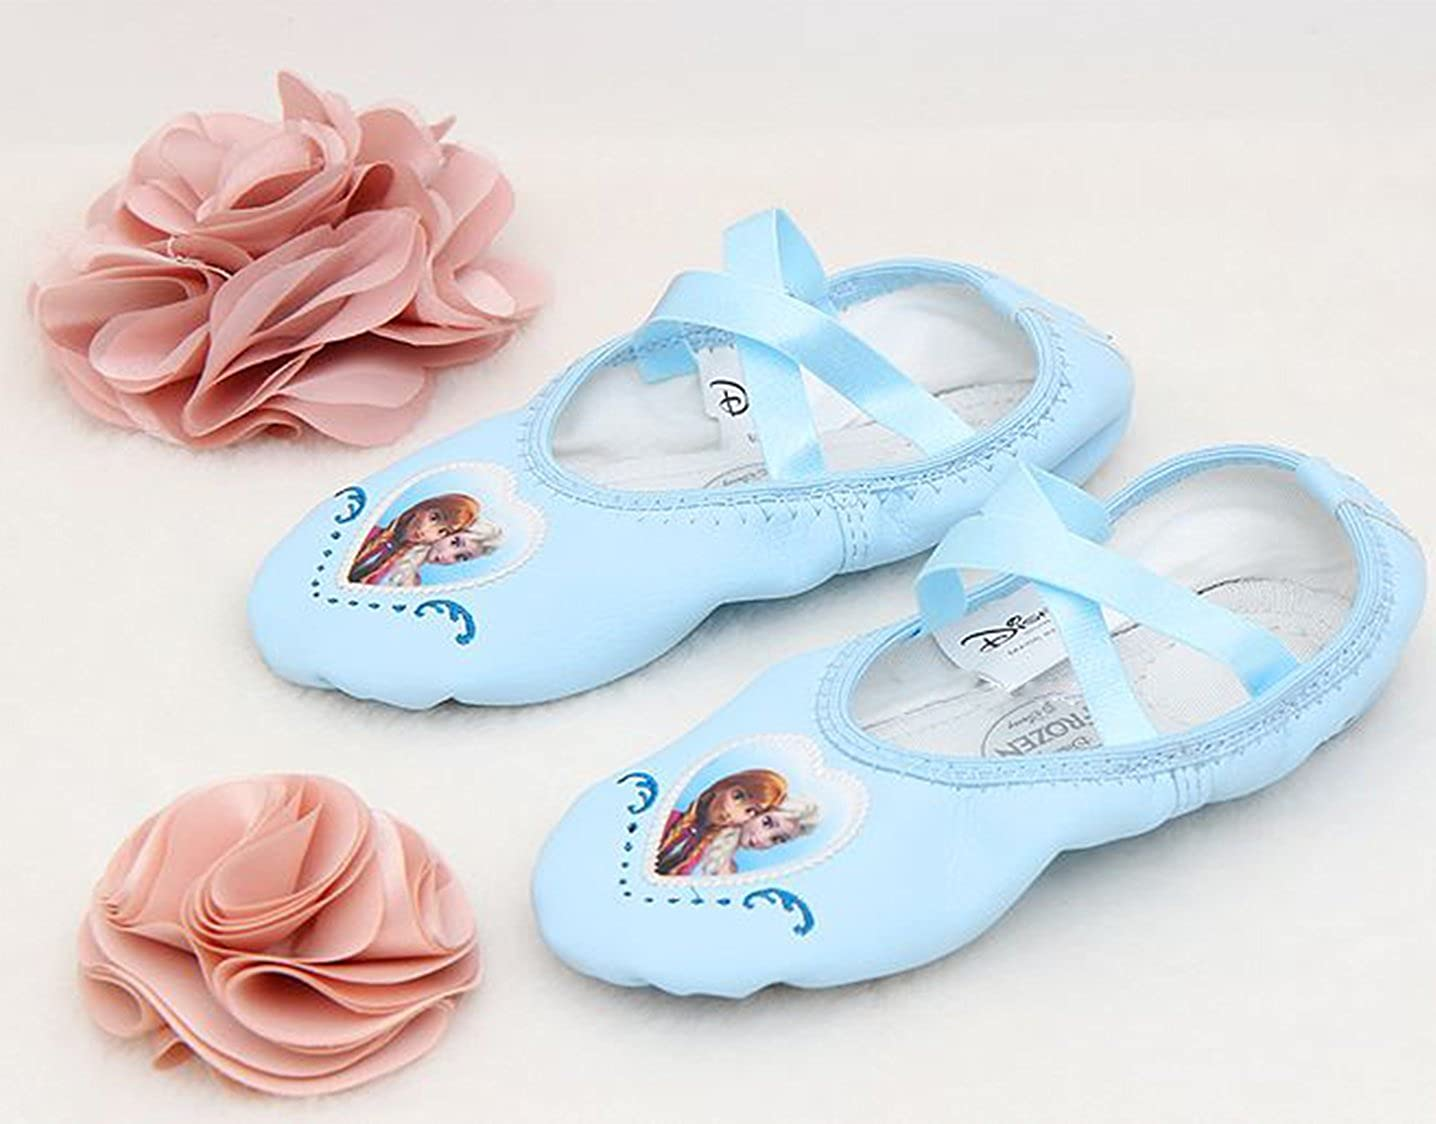 8 M US Toddler, Classic Joah Store Girls Blue Ballet Flat Dance Shoes Runs Small Parallel Import//Generic Product